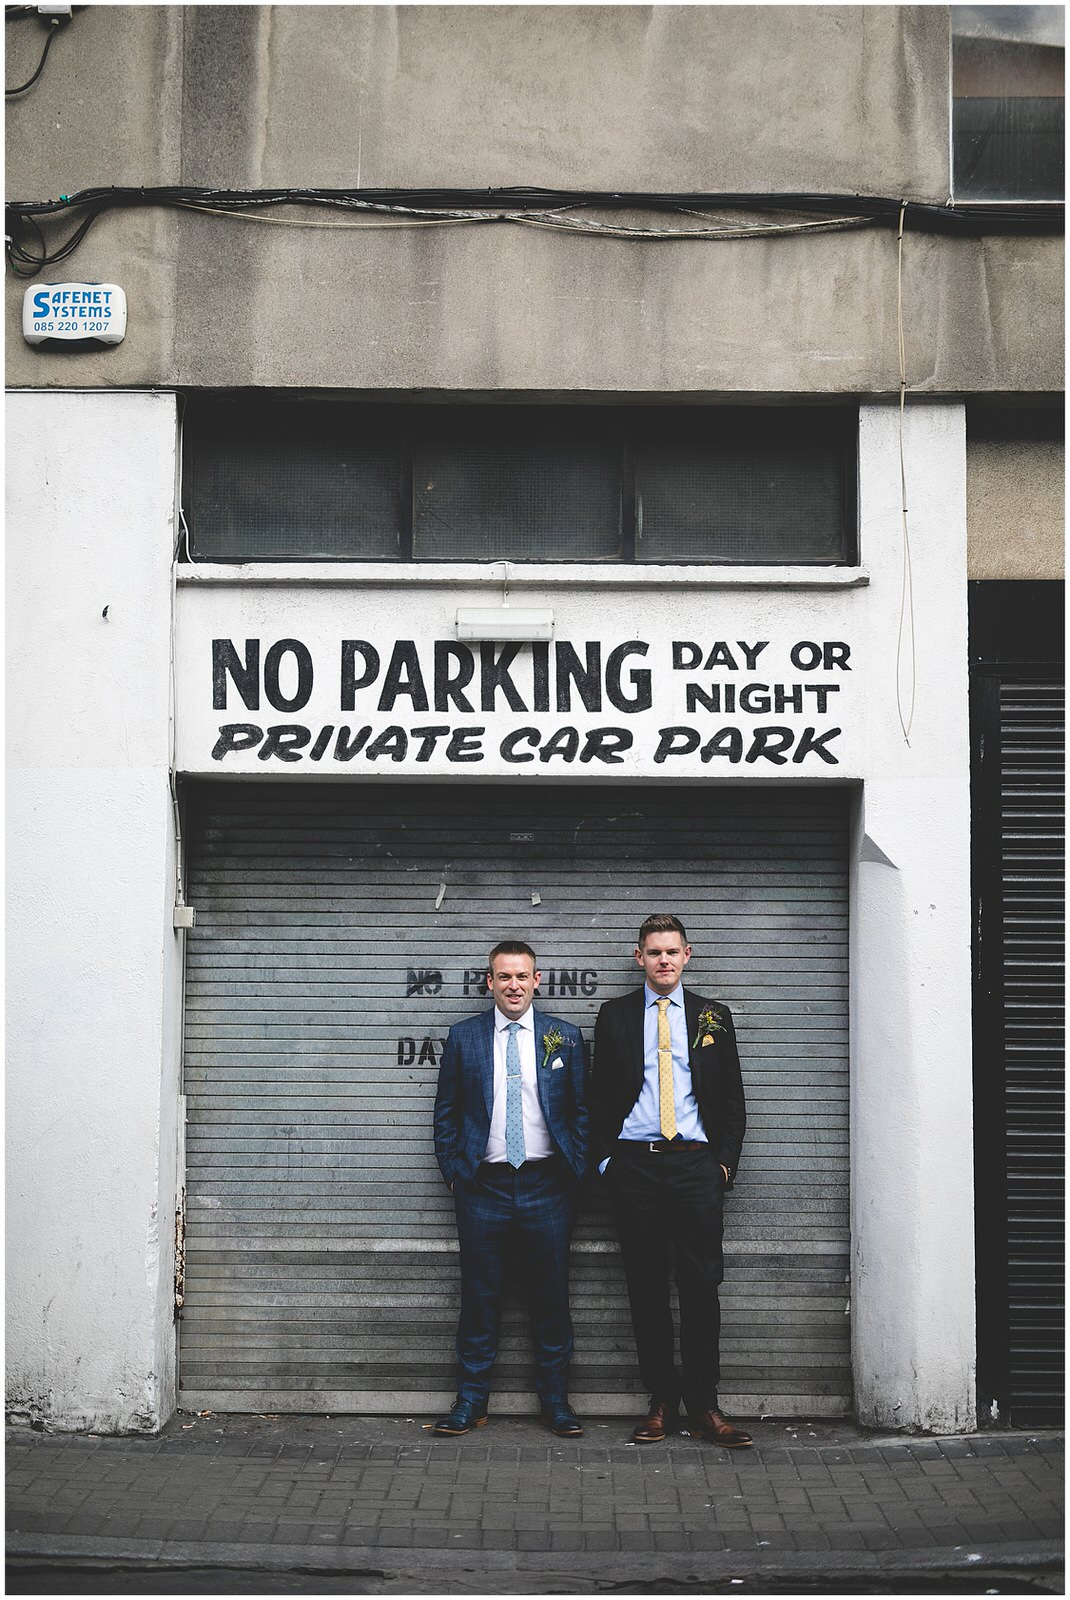 Drury Street 'No Parking day or night'